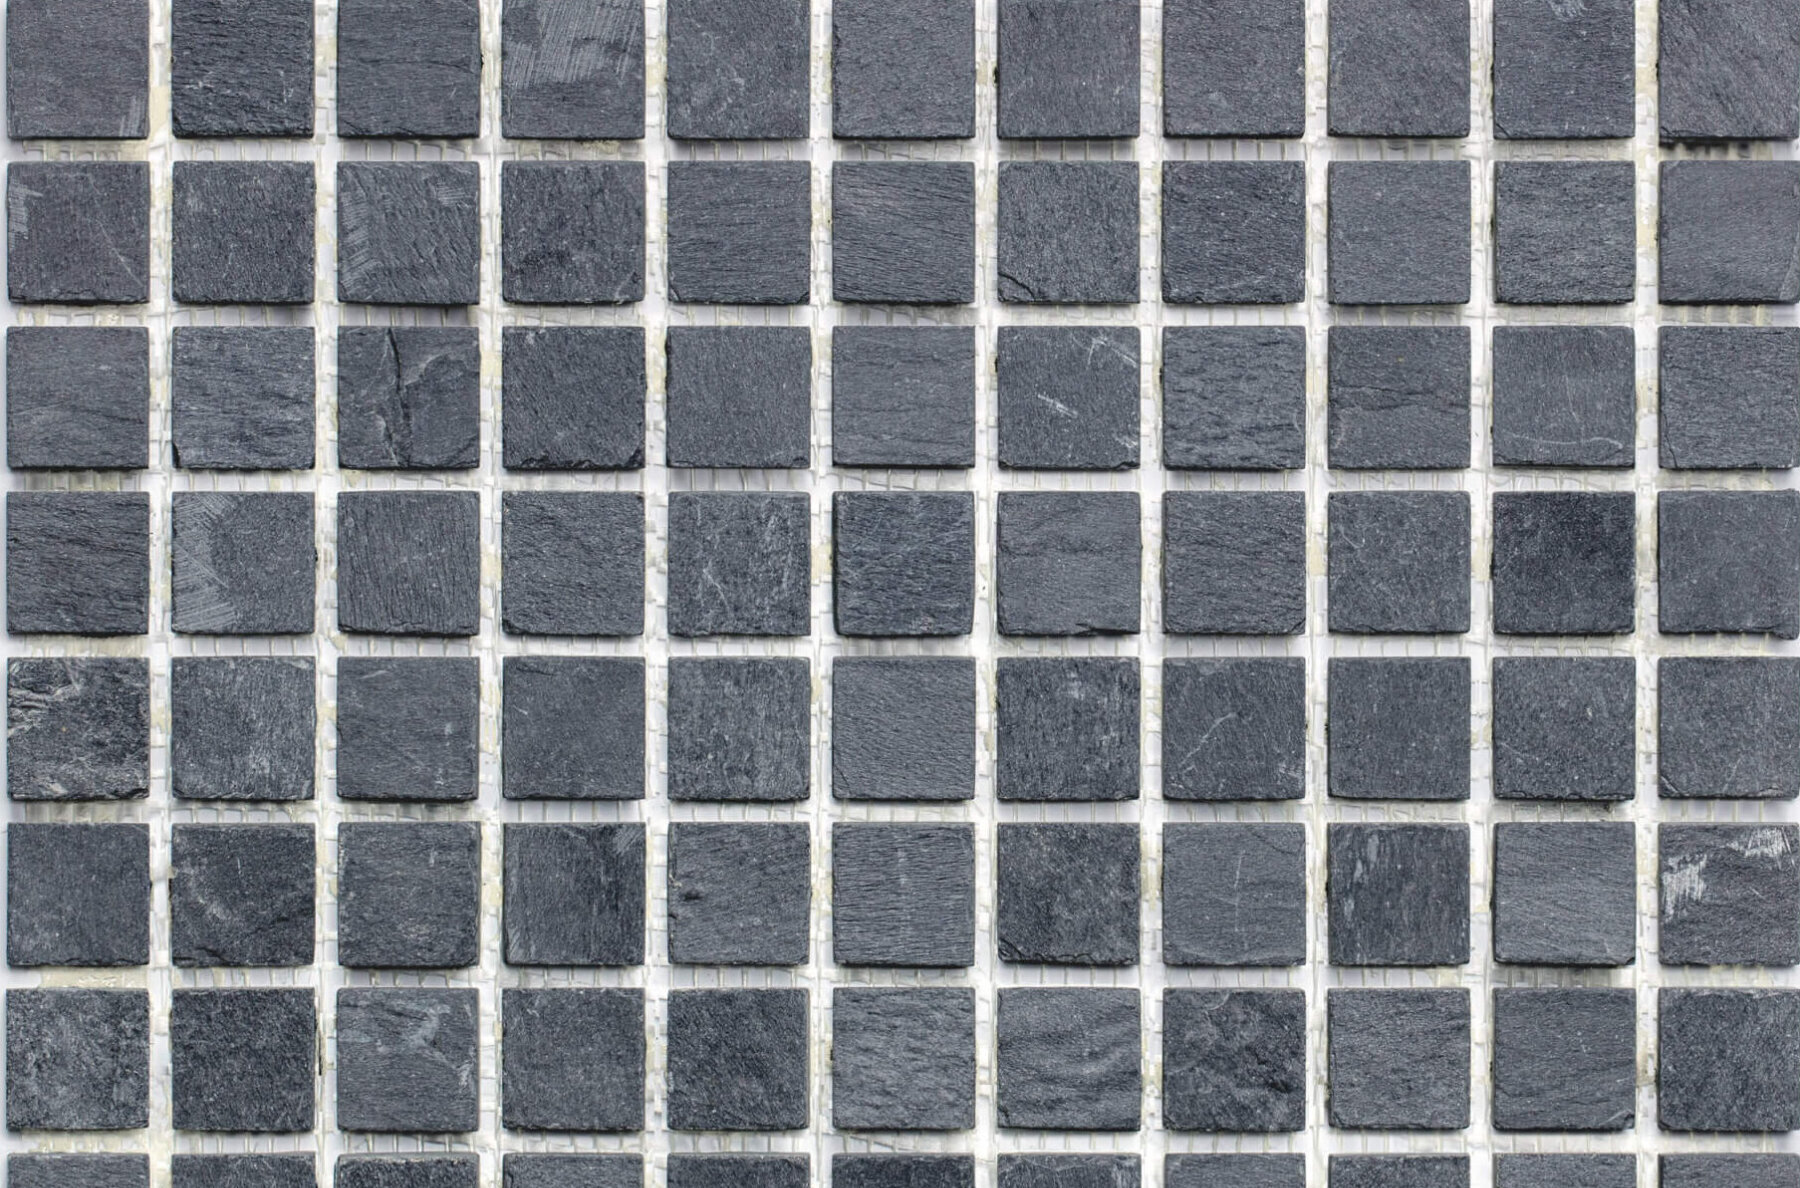 Dark Grey 300x300 mm Mosaic | Aitokivi